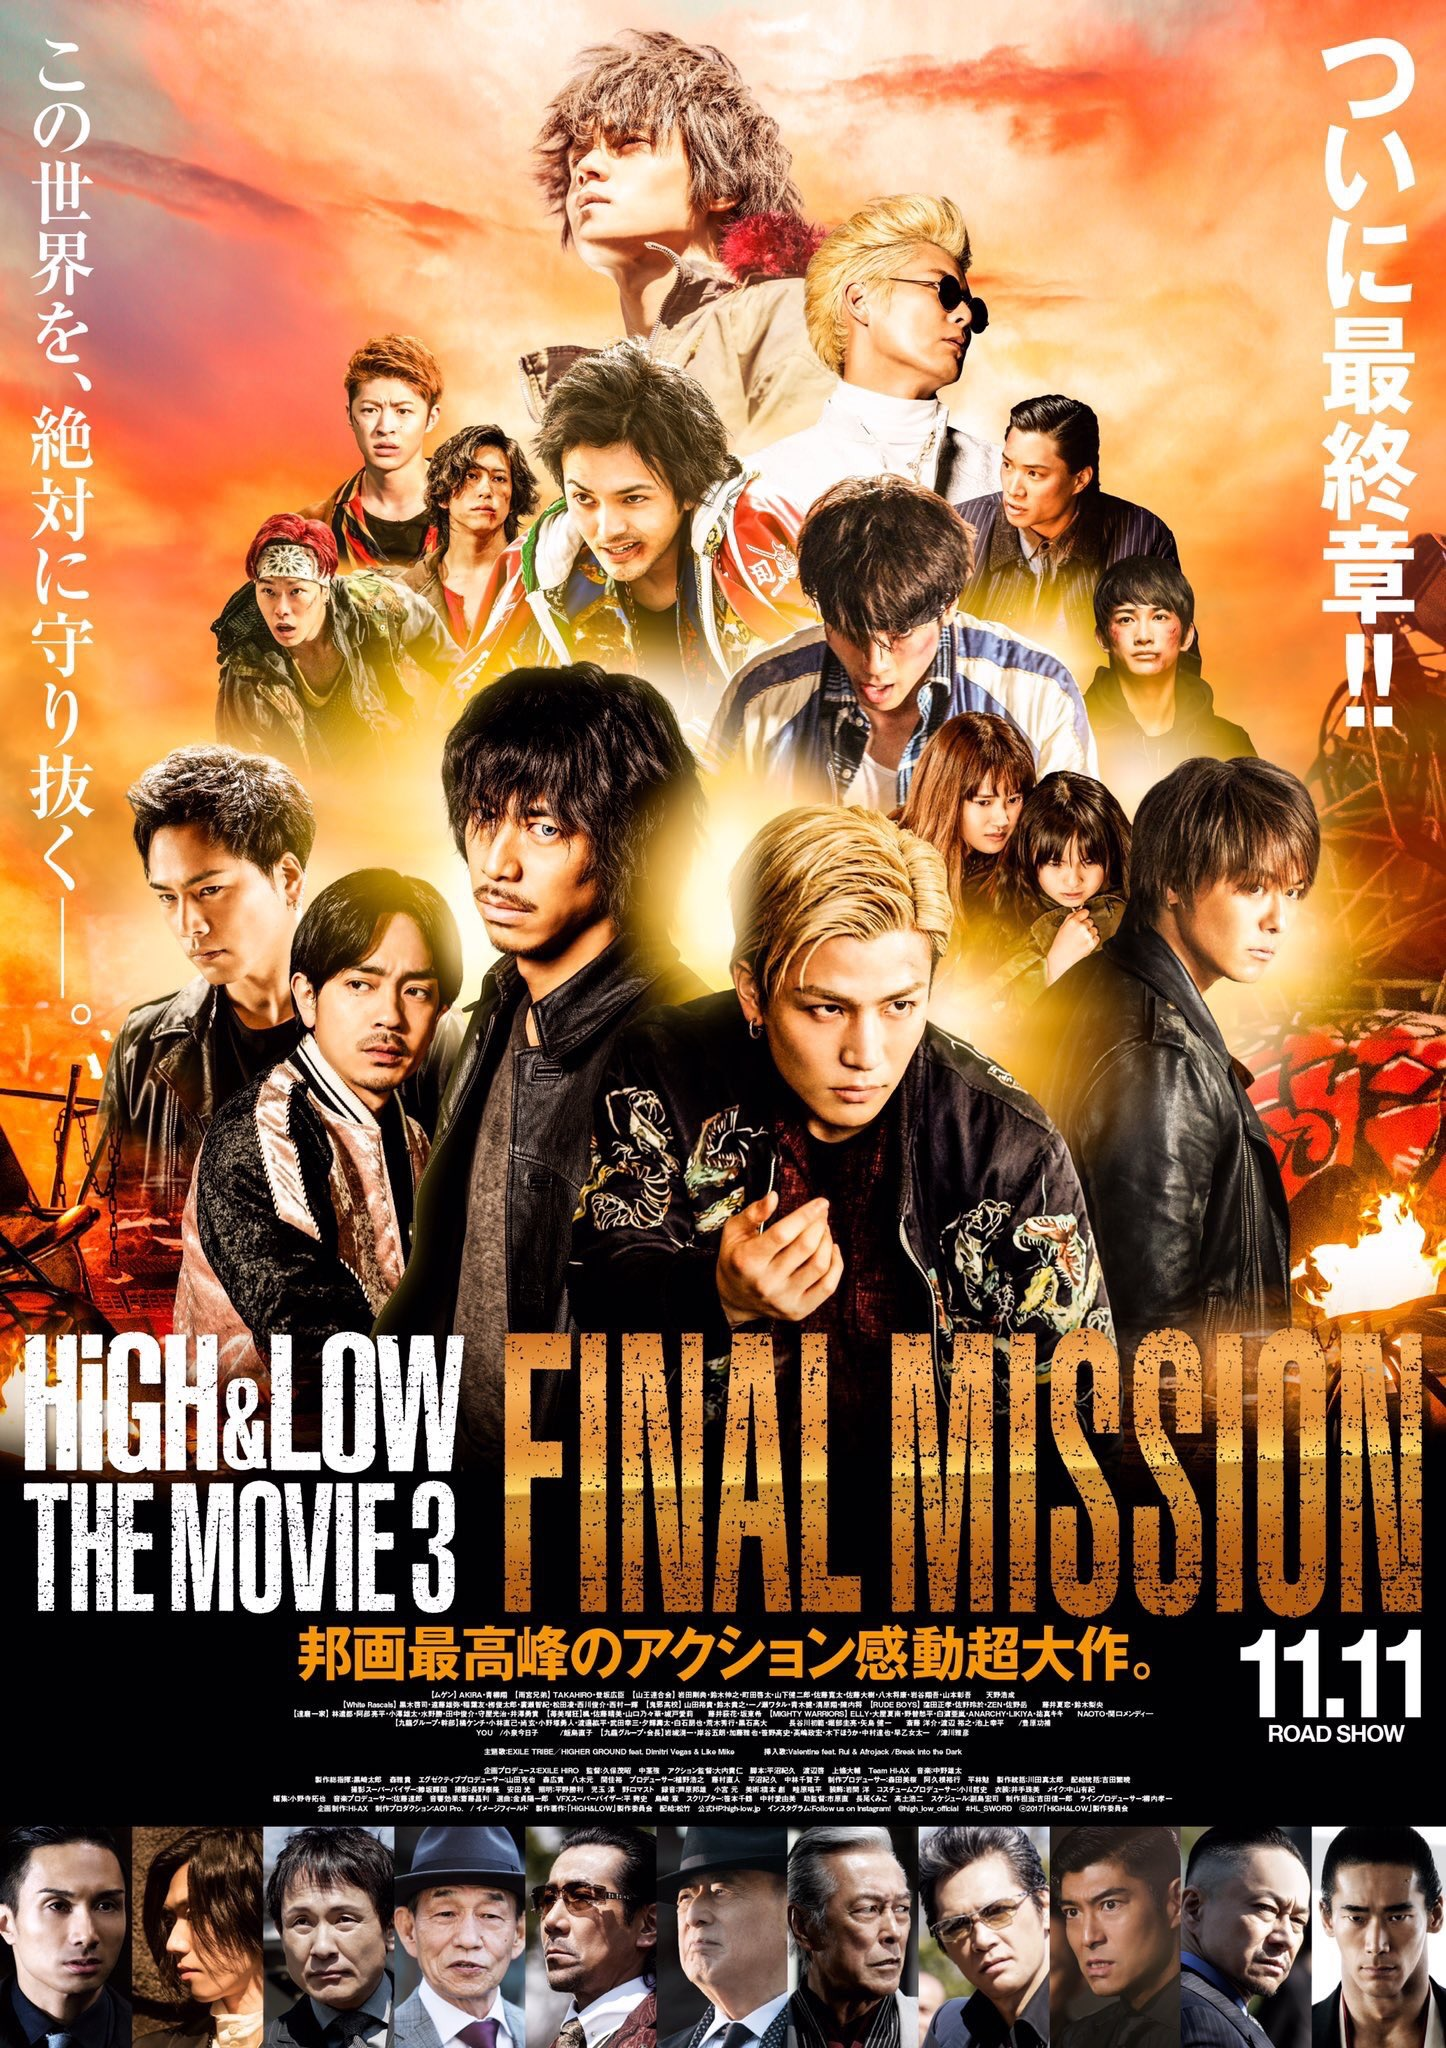 HiGH & LOW THE MOVIE 3 FINAL MISSION